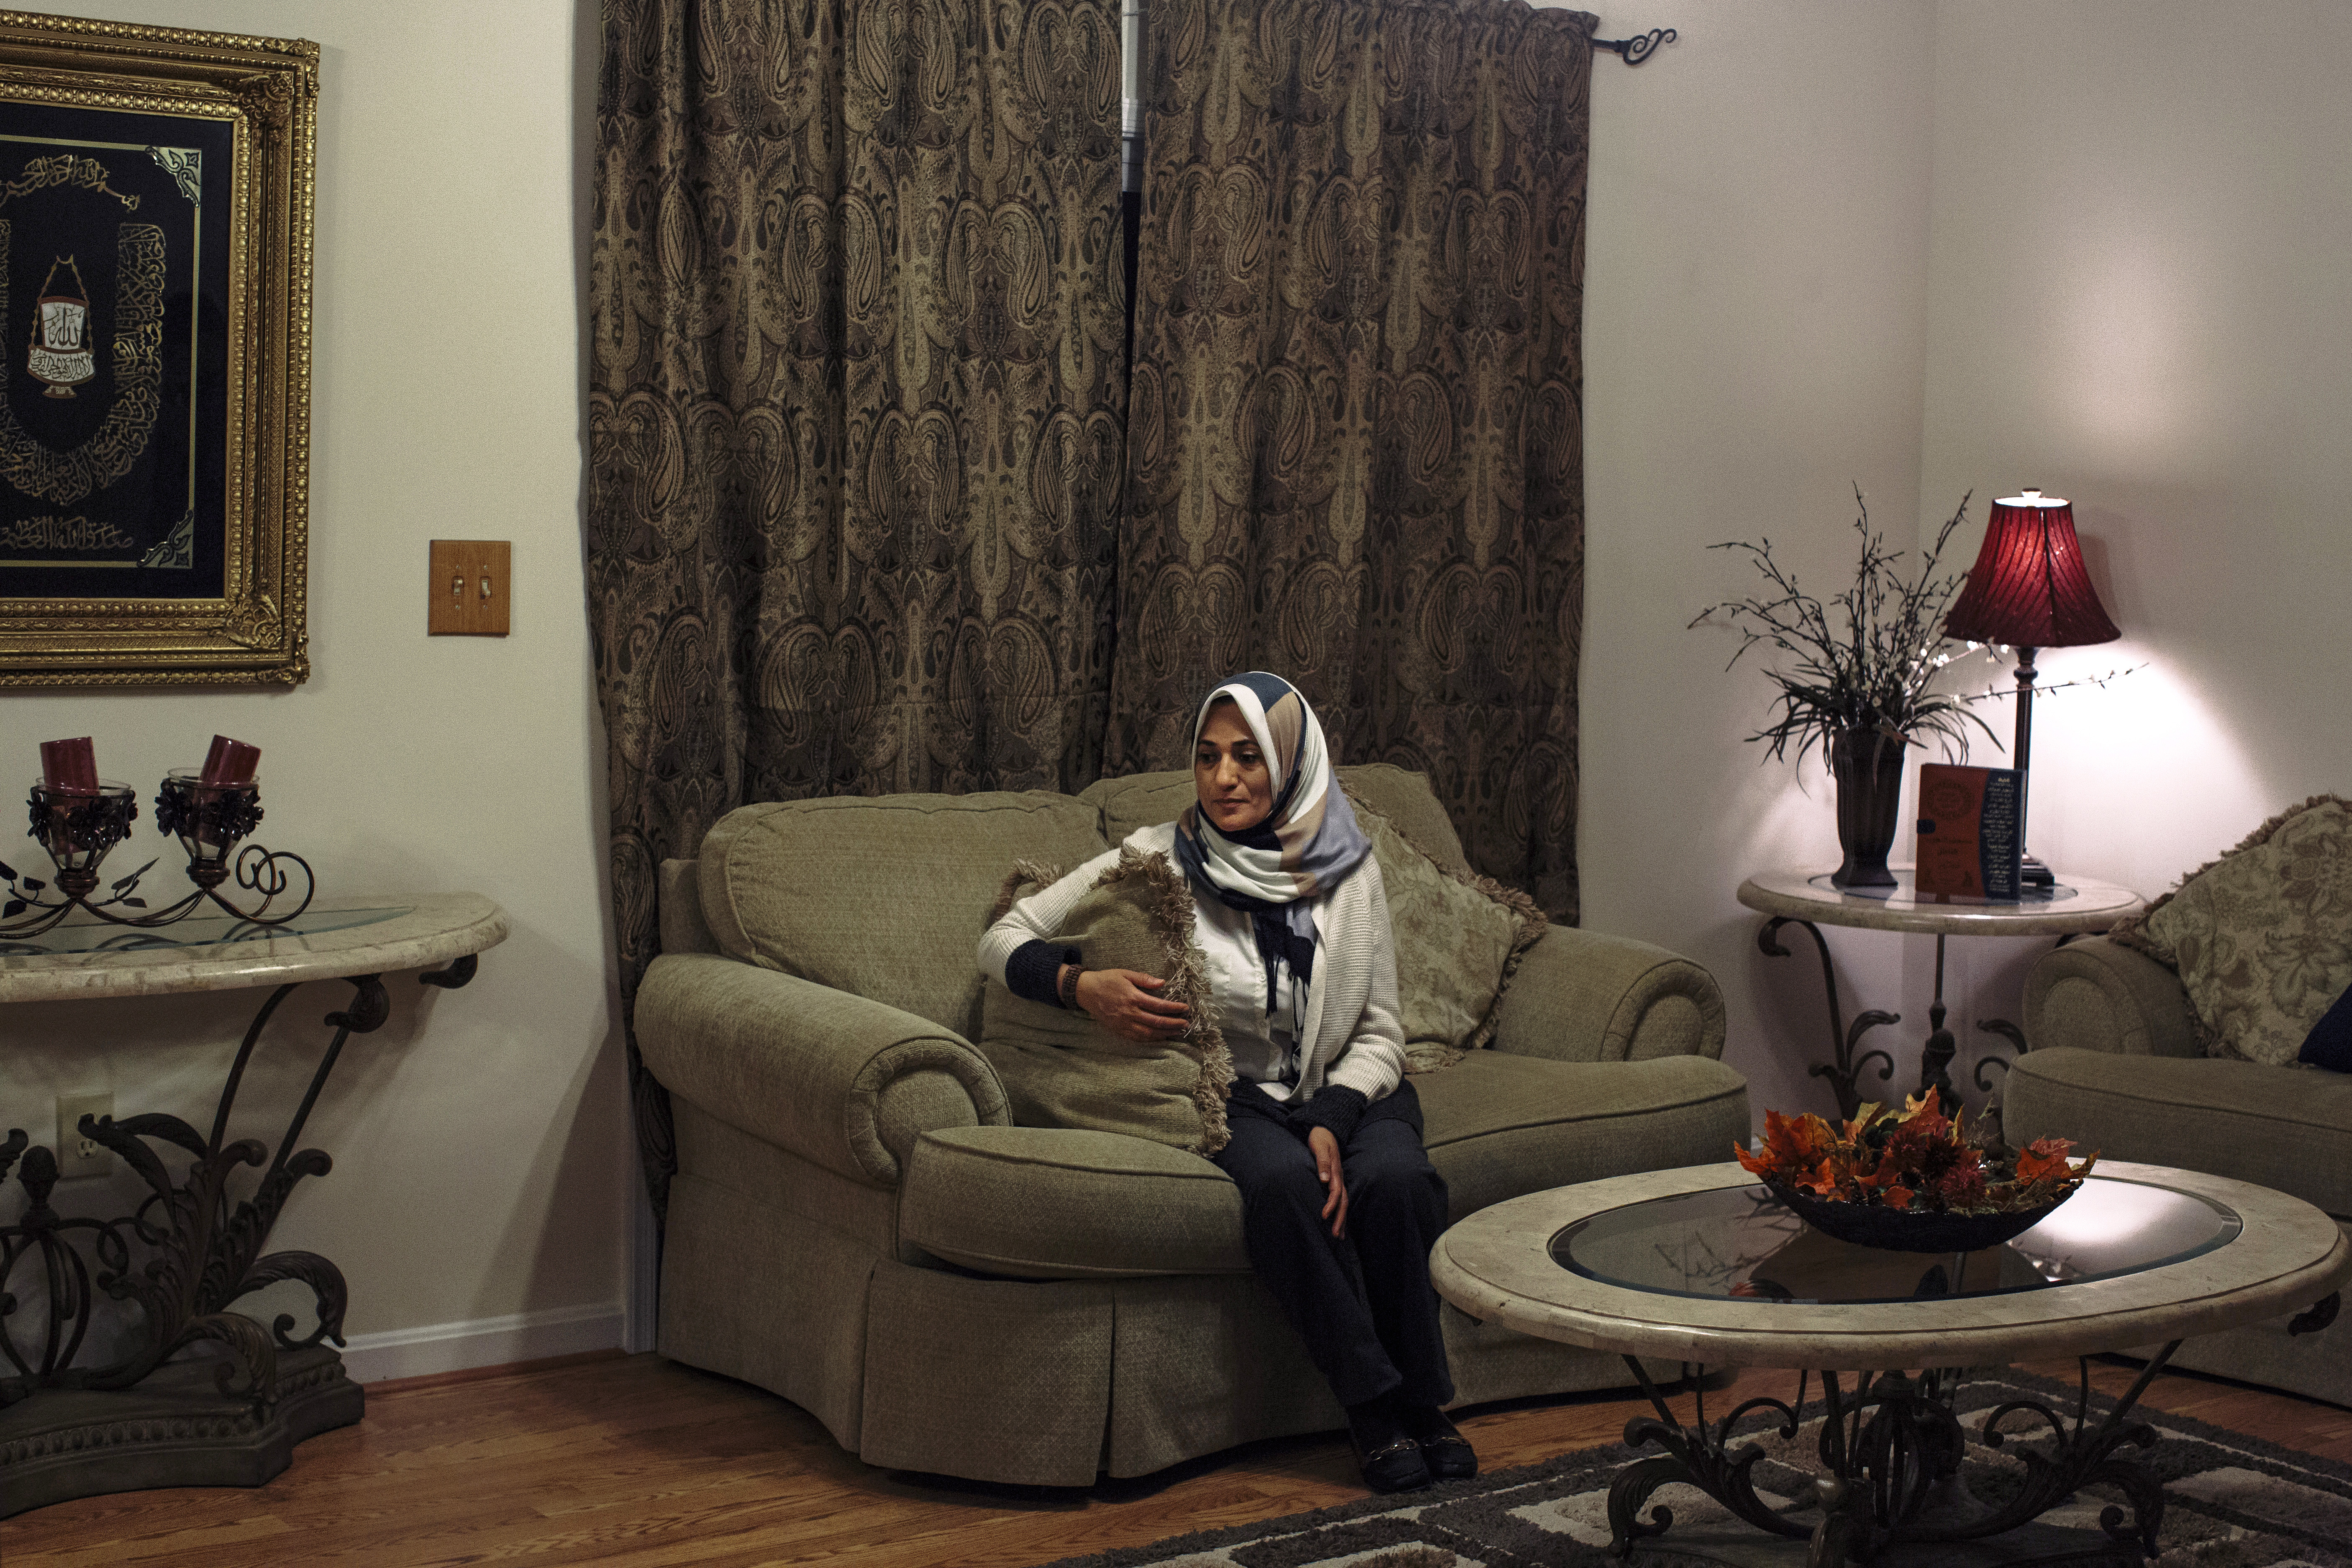 An American Muslim Community Shares Its